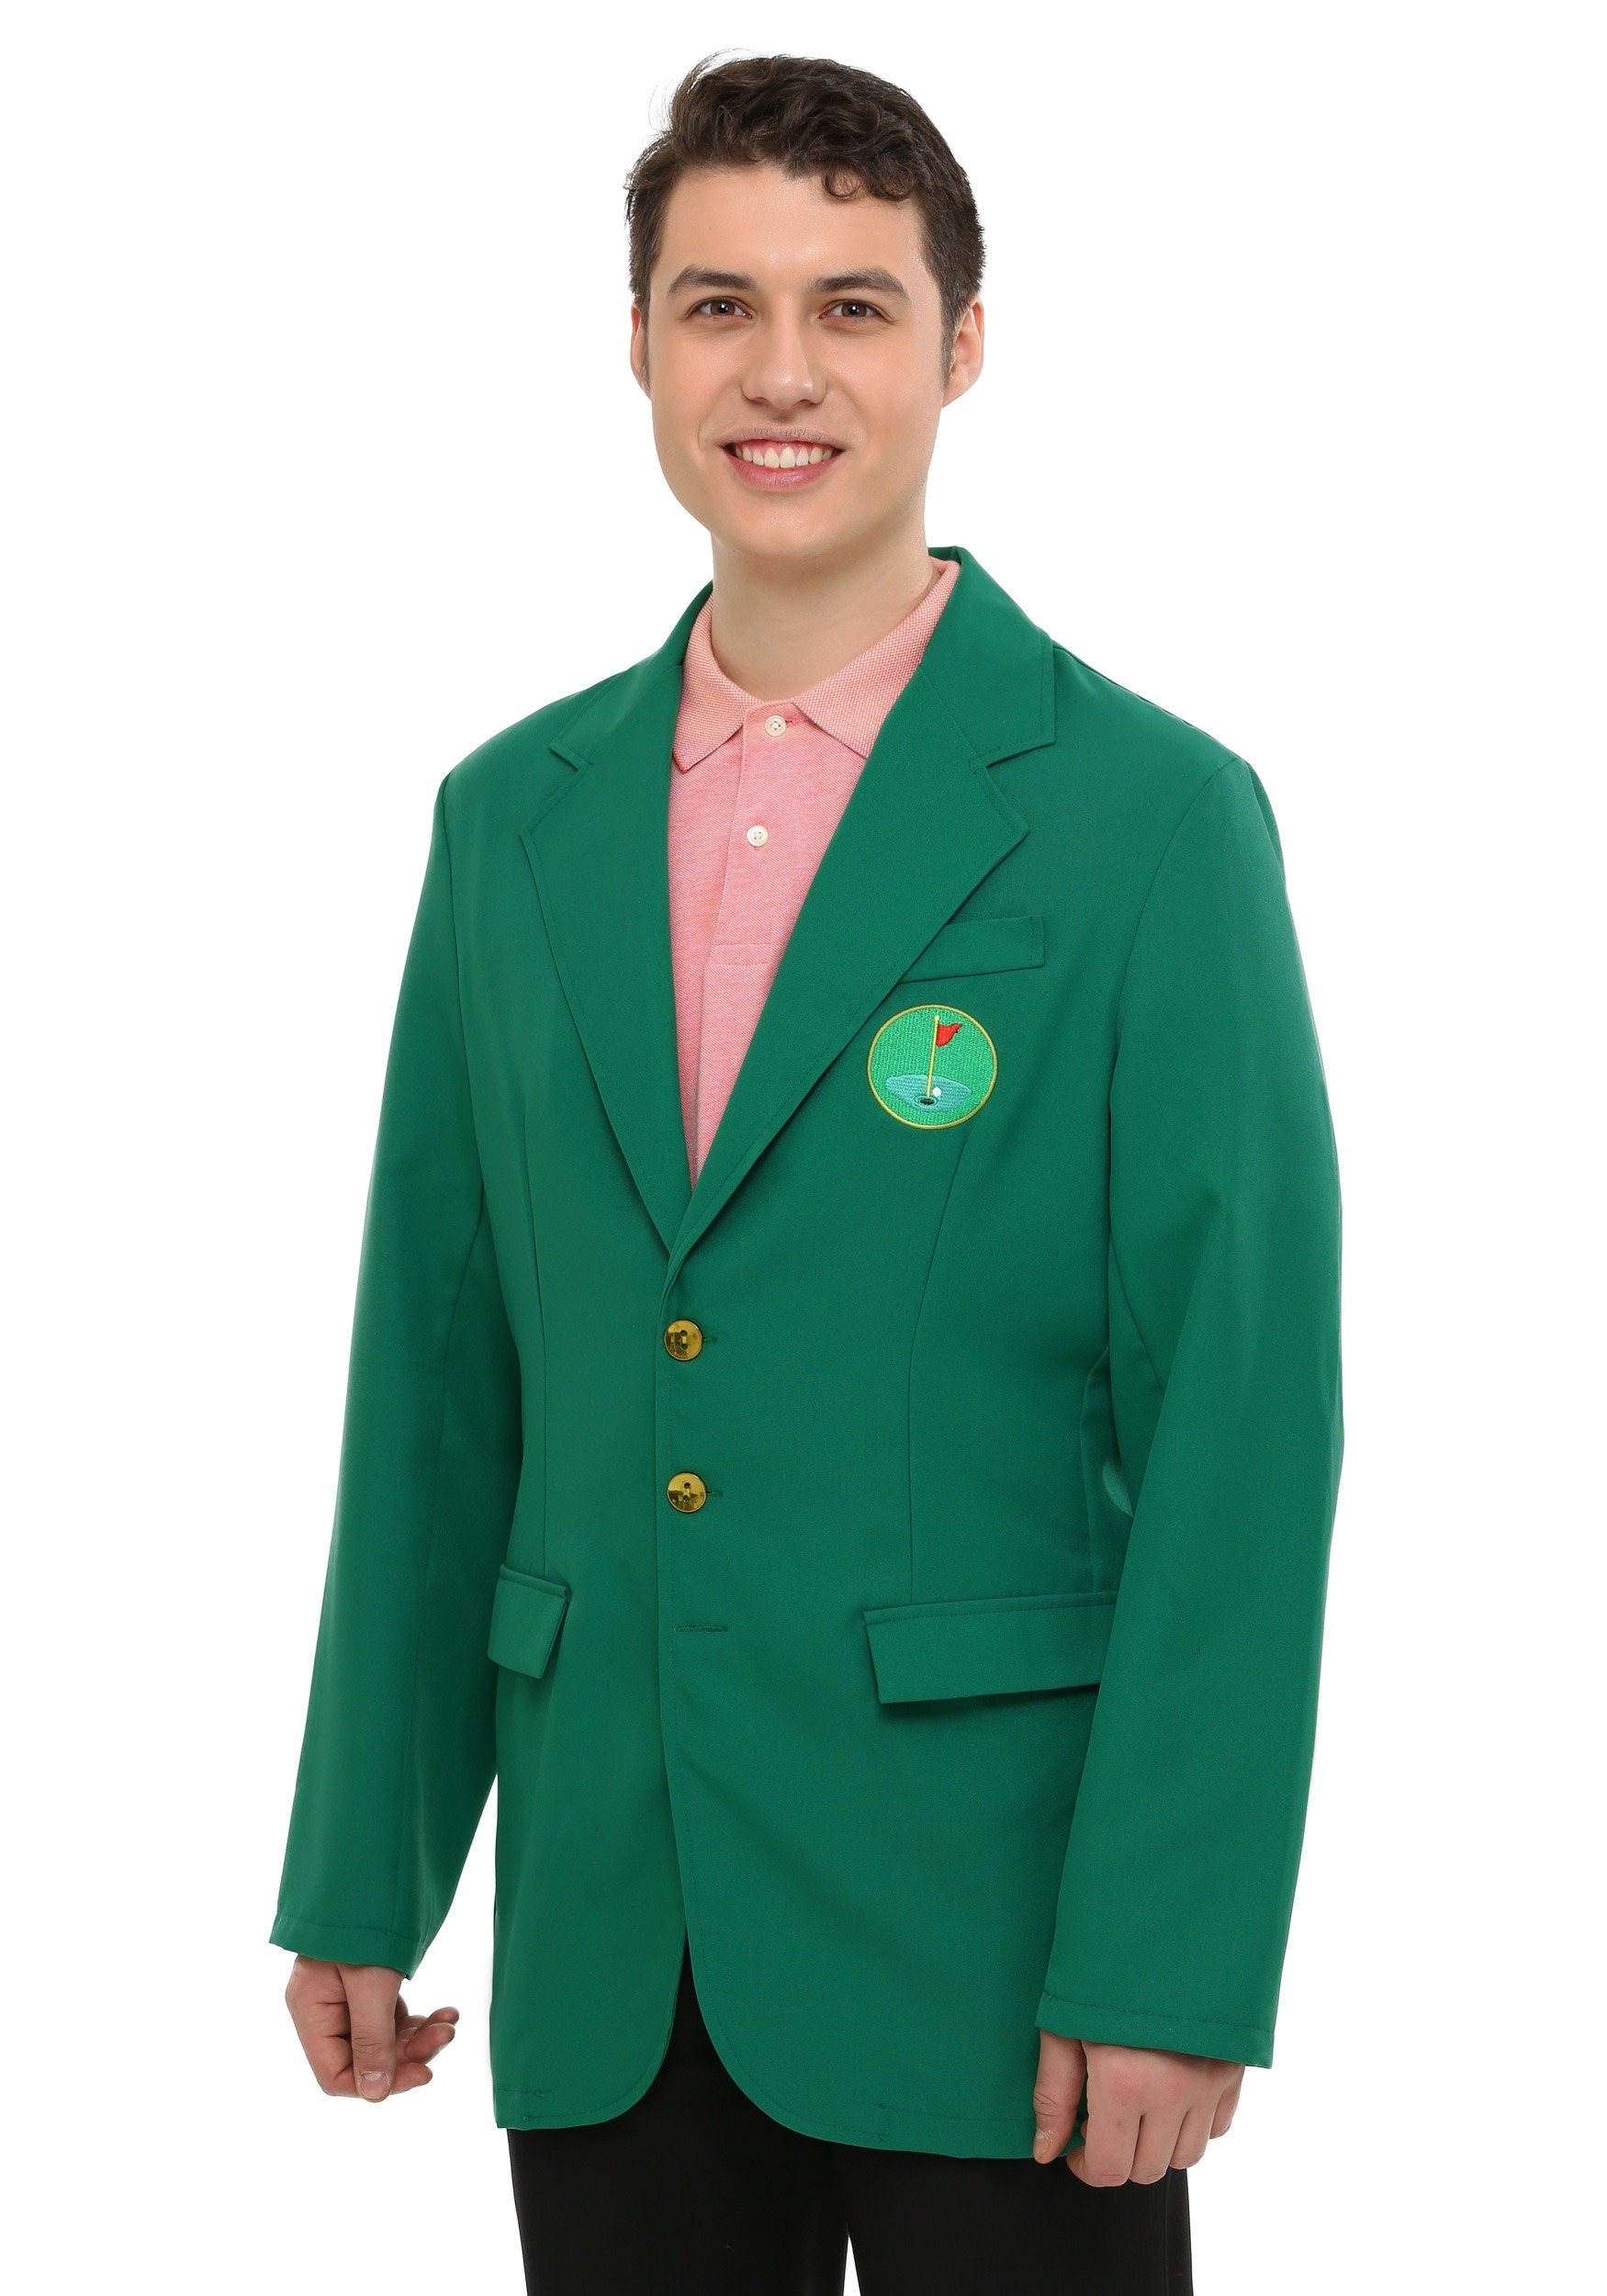 Adult Plus Sized Golf Green Champion Jacket